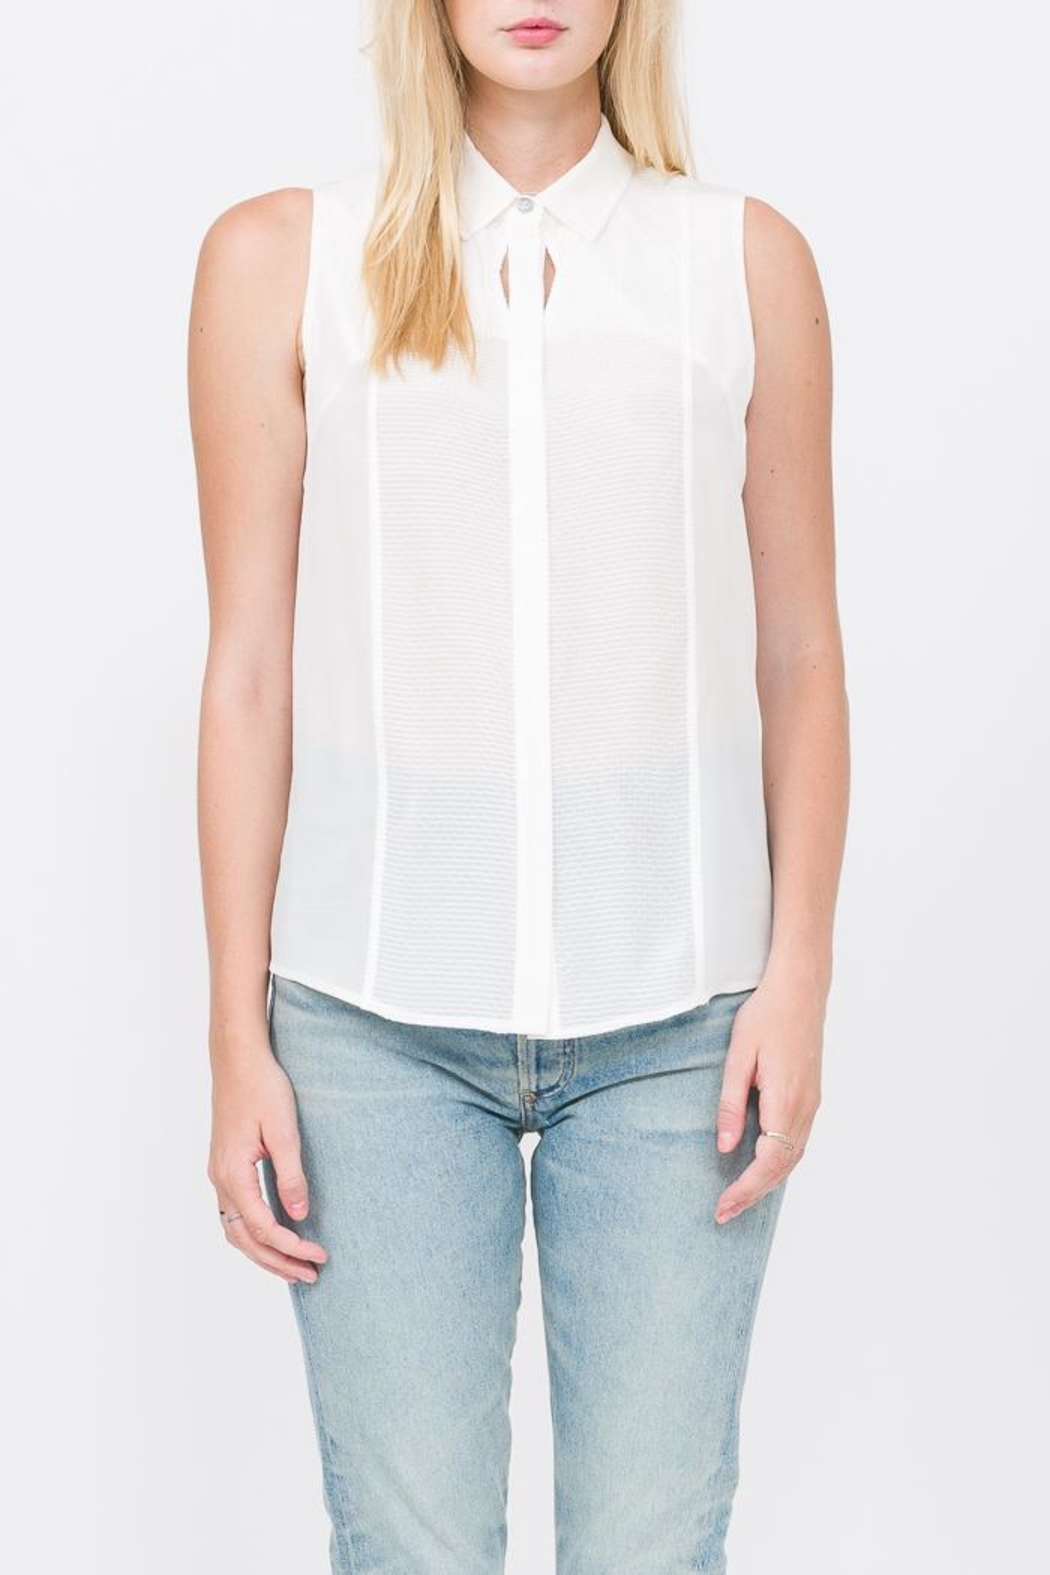 QUINN Chelsea Button Up Top - Front Full Image